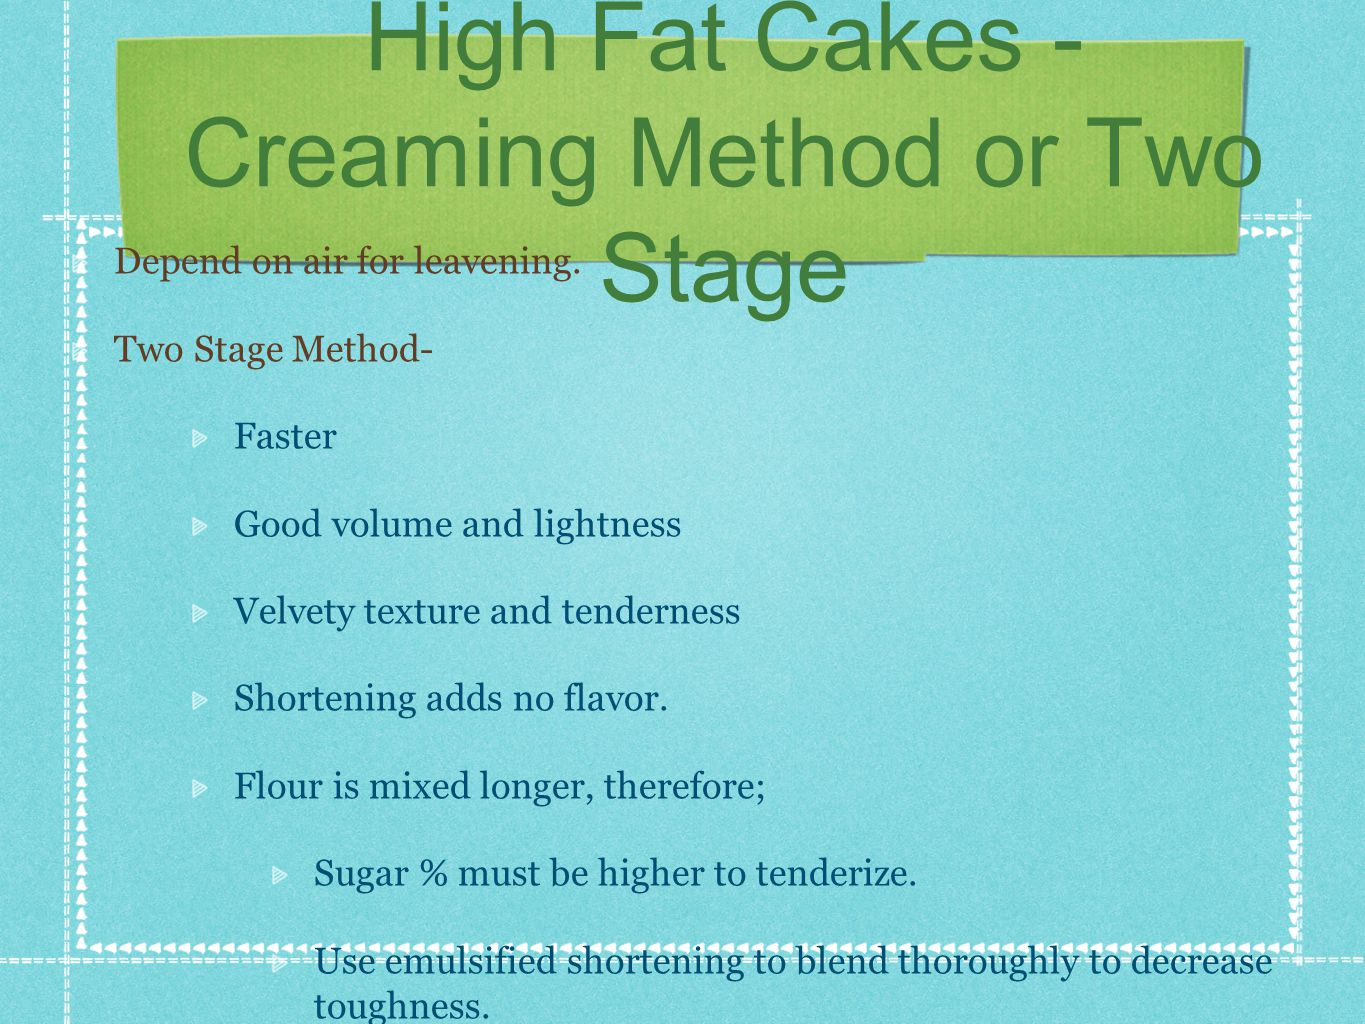 High Fat Cakes - Creaming Method or Two Stage Depend on air for leavening.